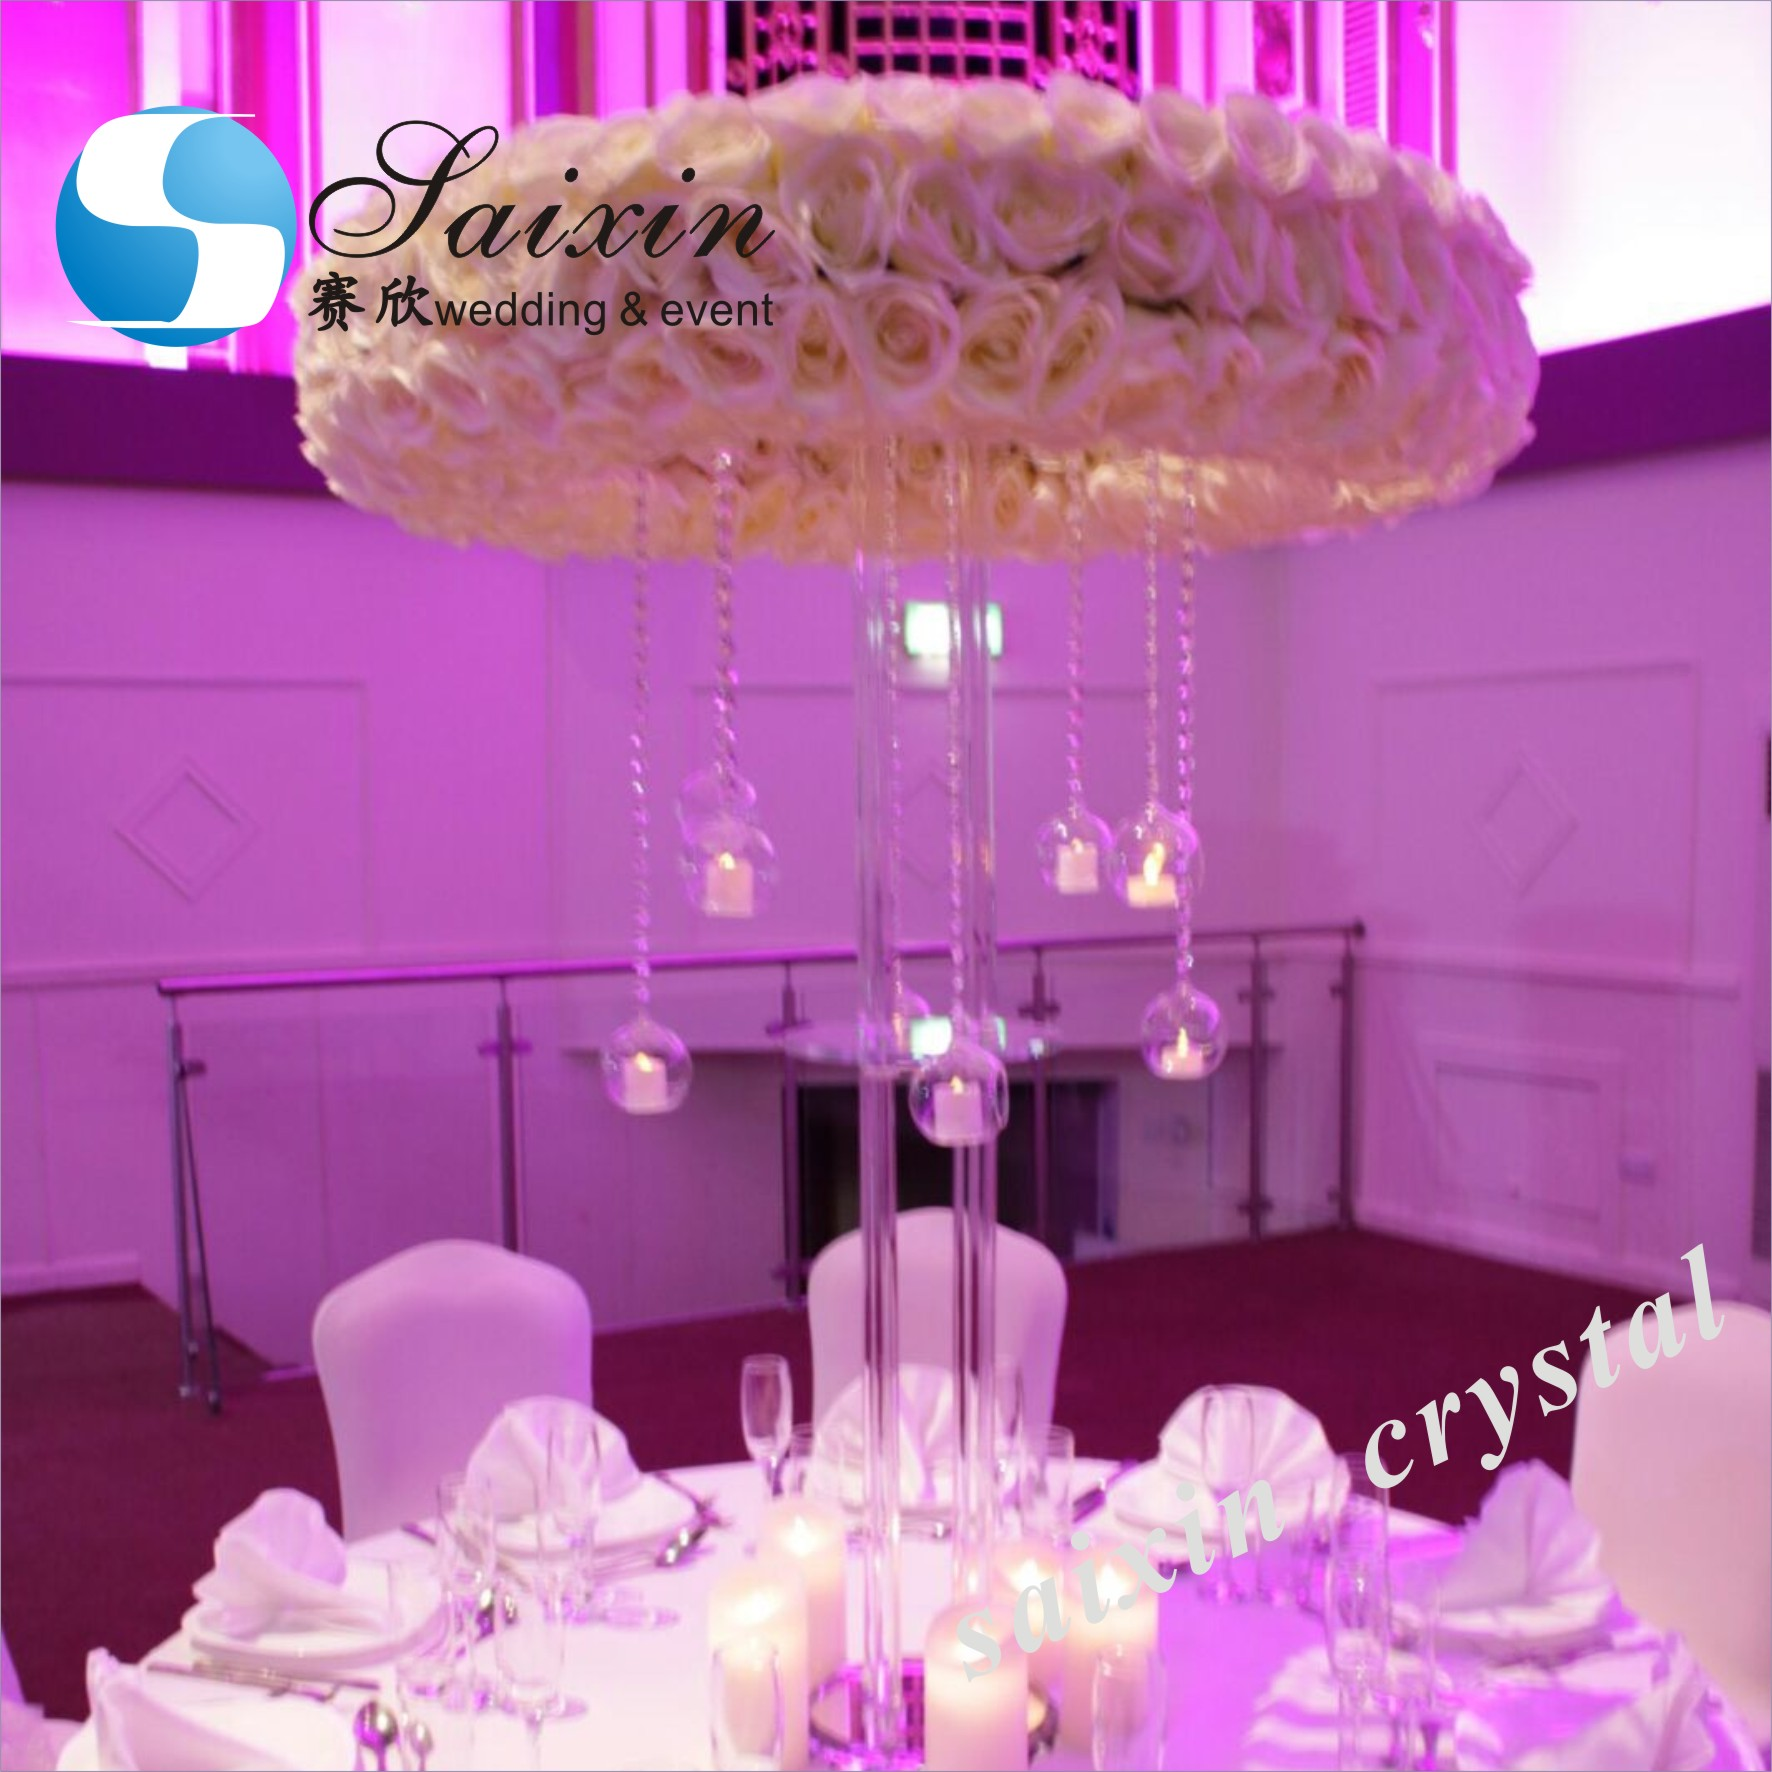 Bling Crystal cake stand items for event decoration equipment